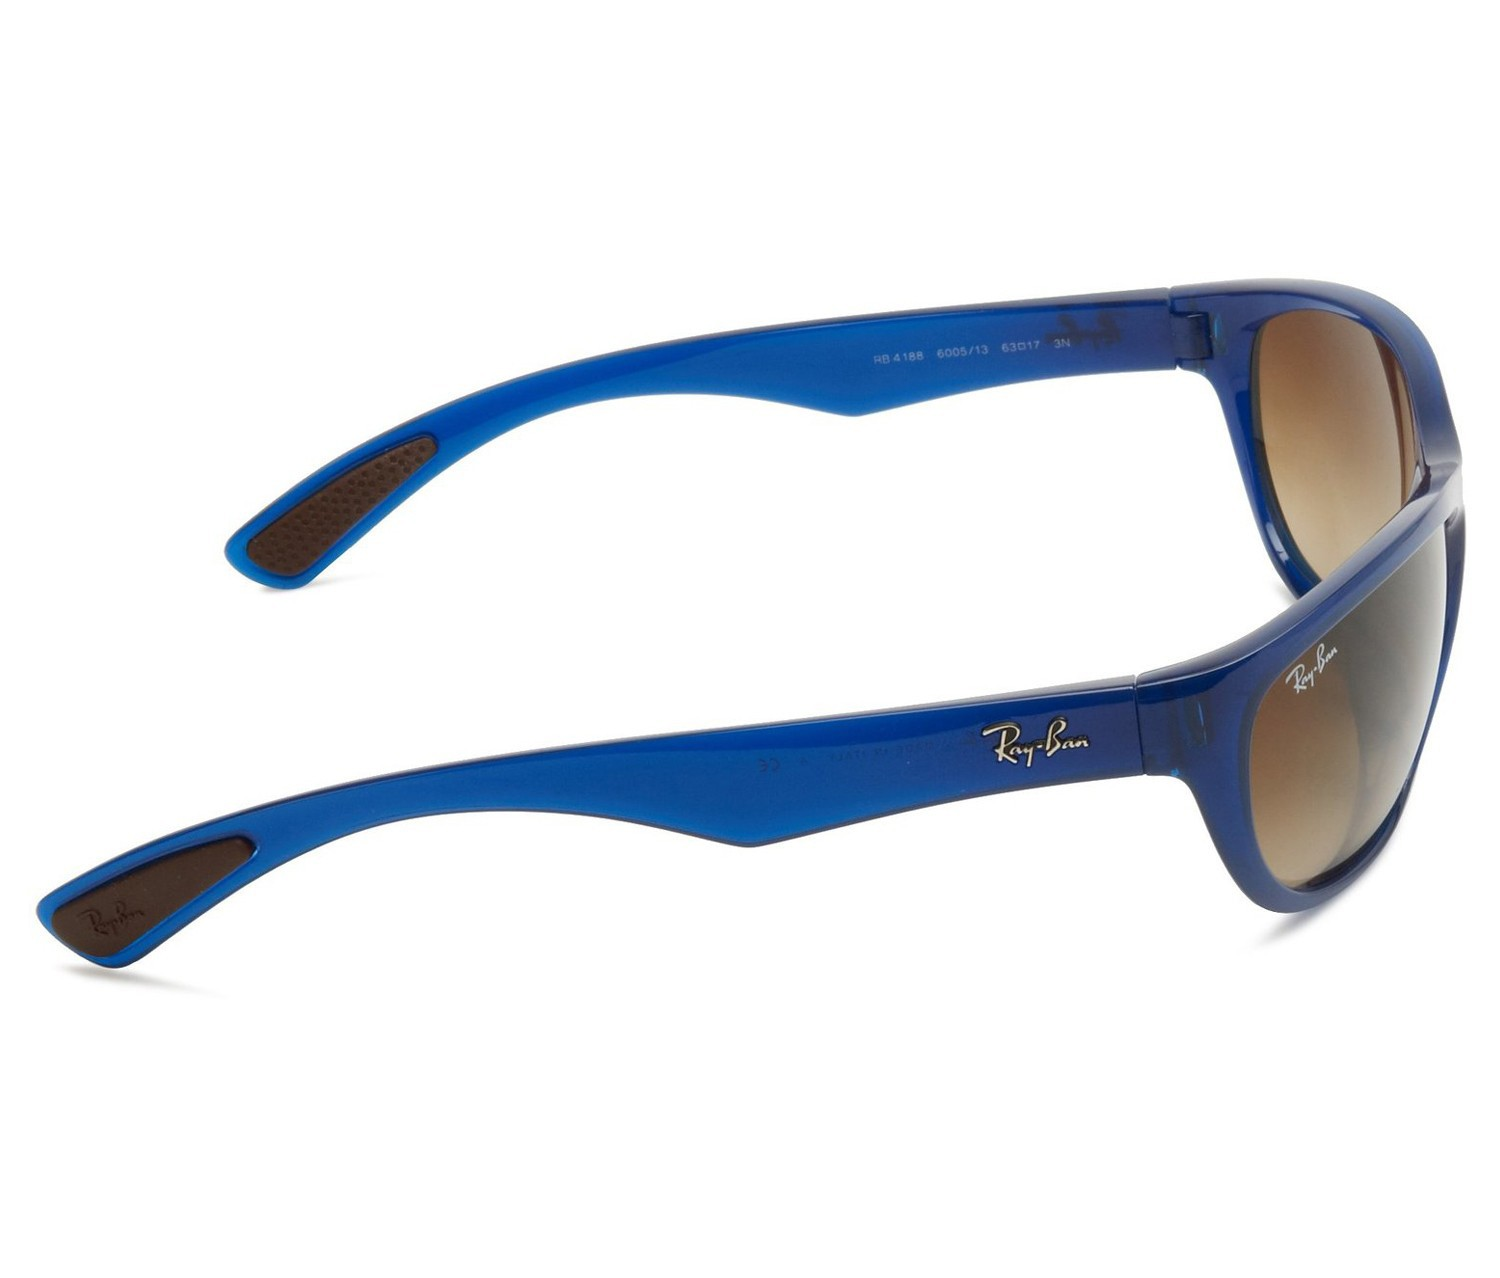 98a4199303c276 Ray Ban Frame Glasses Brown Blue Shower « Heritage Malta